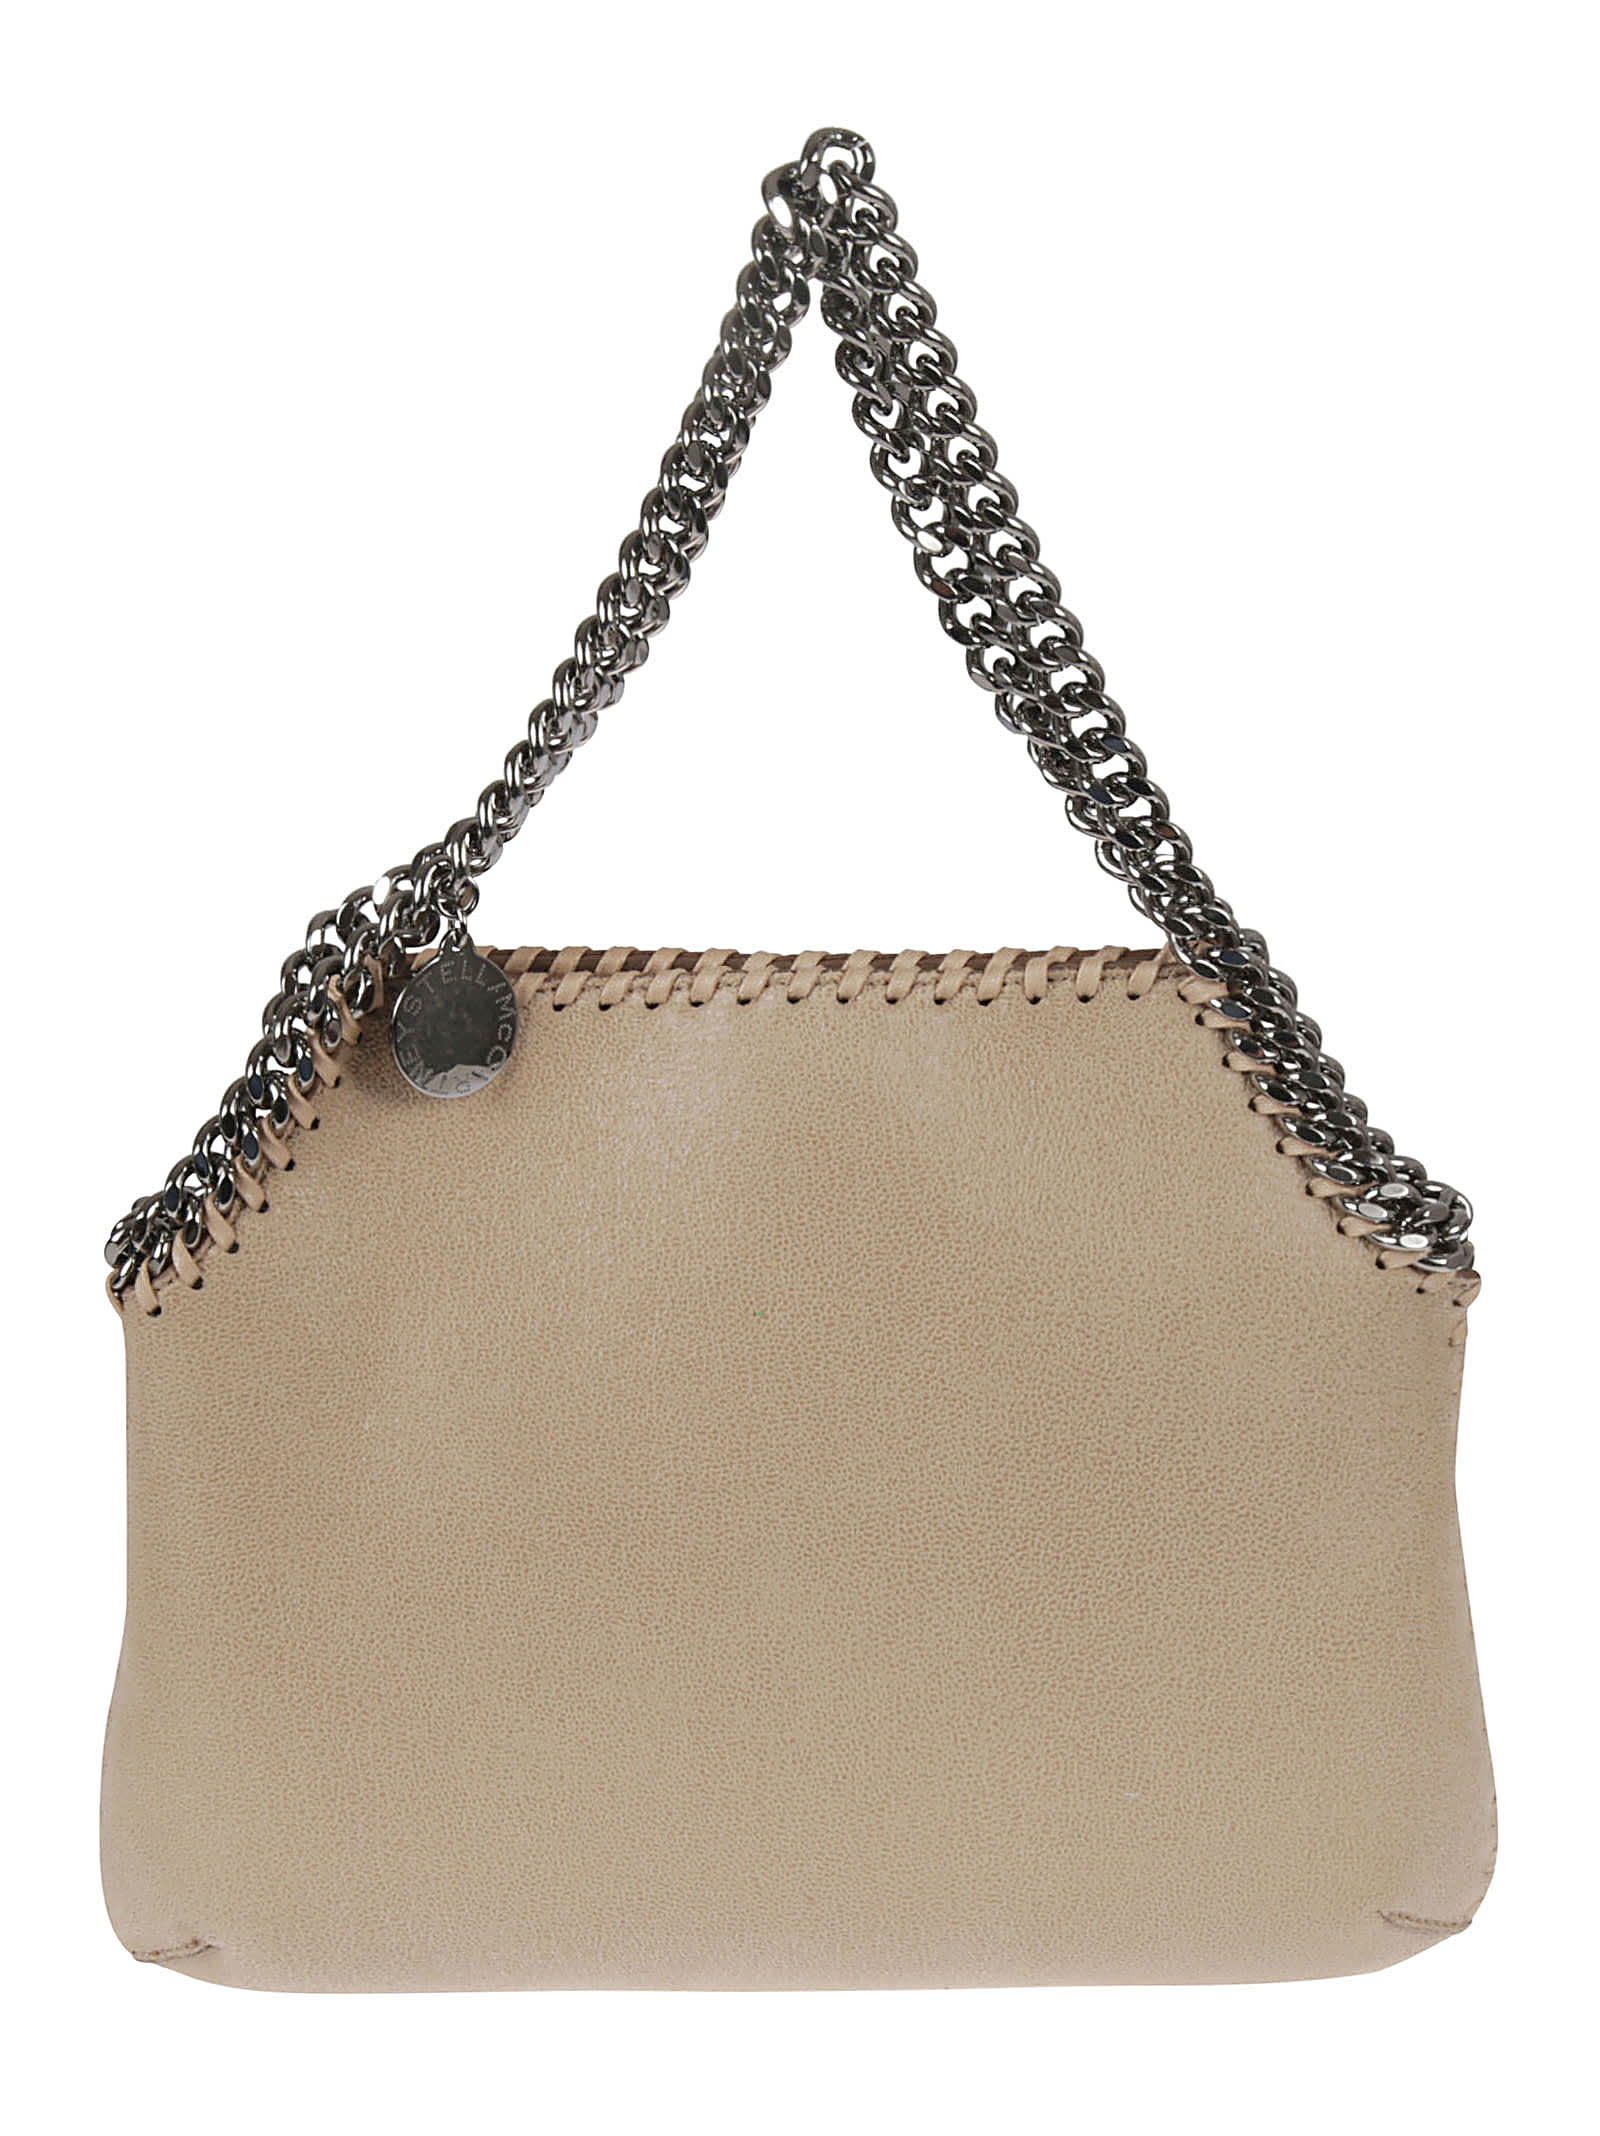 Stella Mccartney SHAGGY DEE MEDIUM SHOULDER BAG